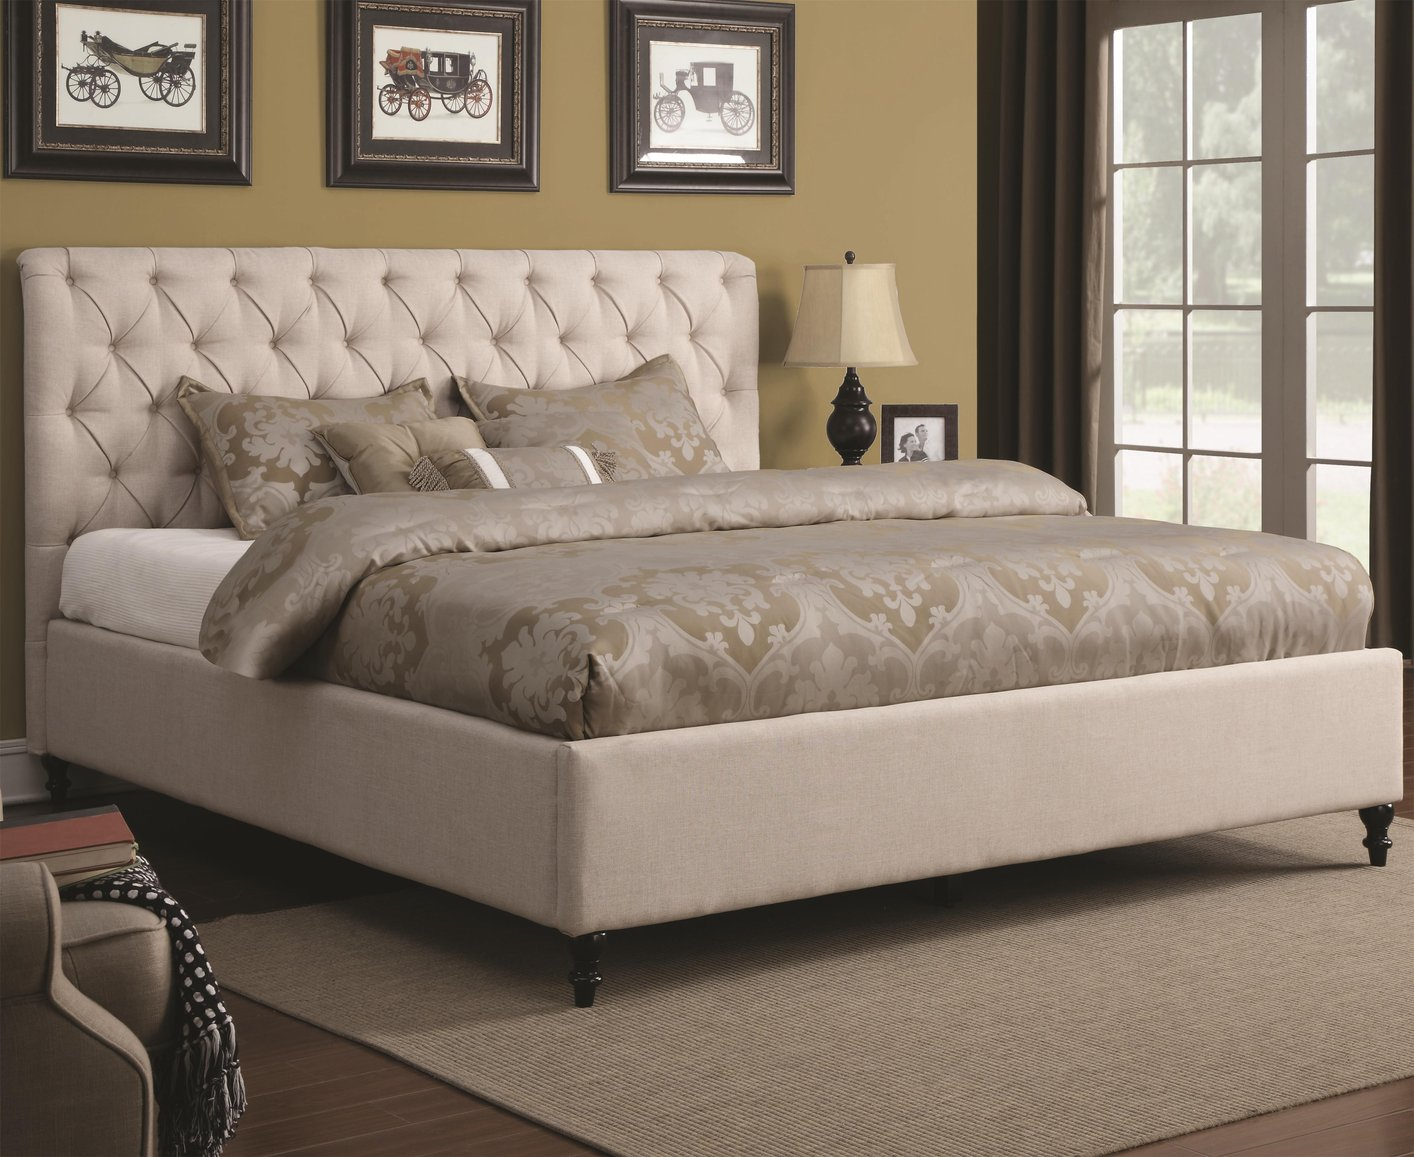 Coaster 300403kw Beige California King Size Fabric Bed